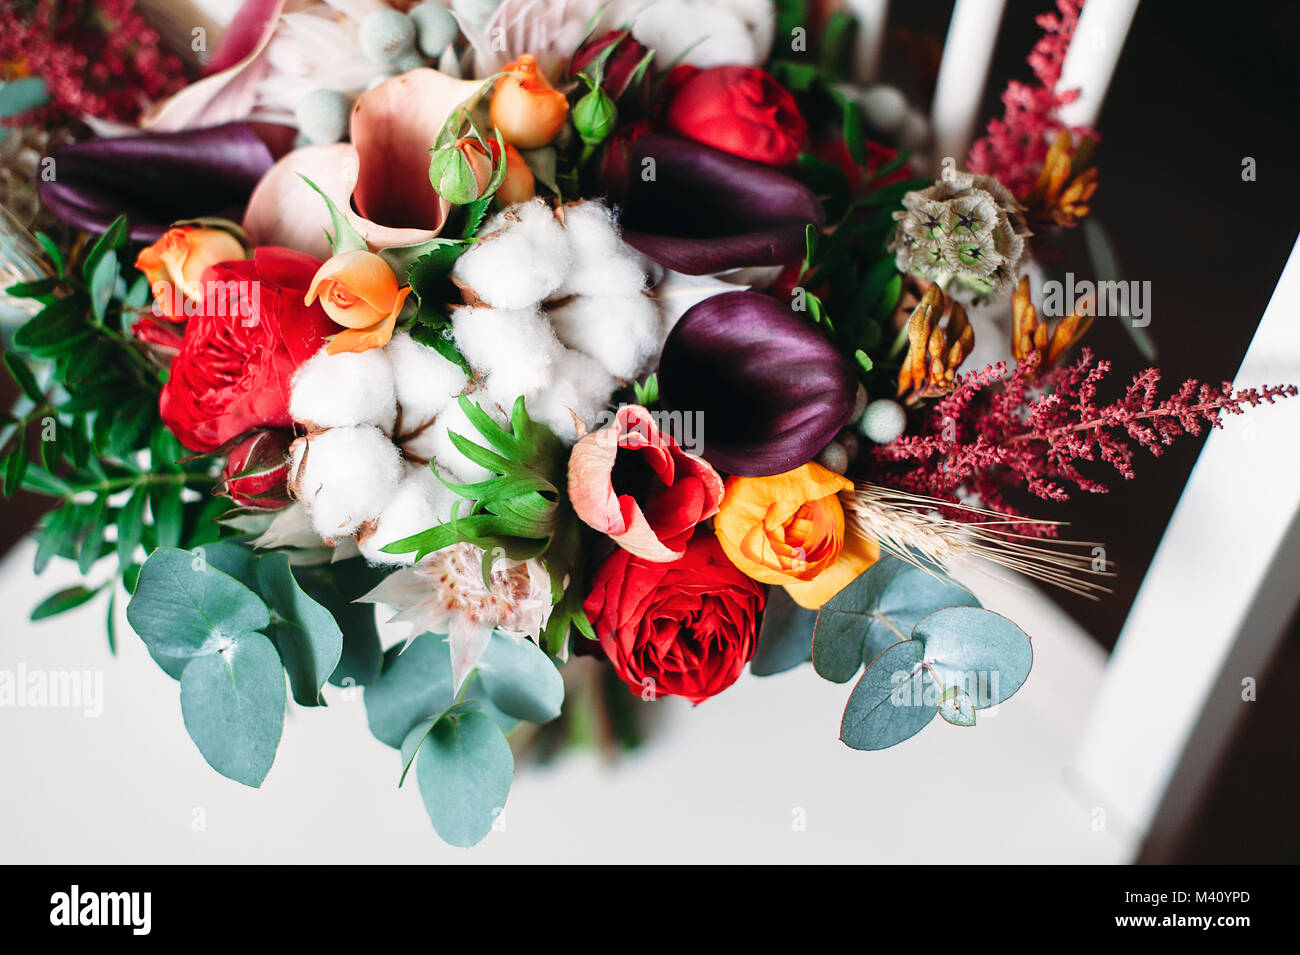 075836bbd0c4 Wedding bouquet in boho chic and rustic style with cotton